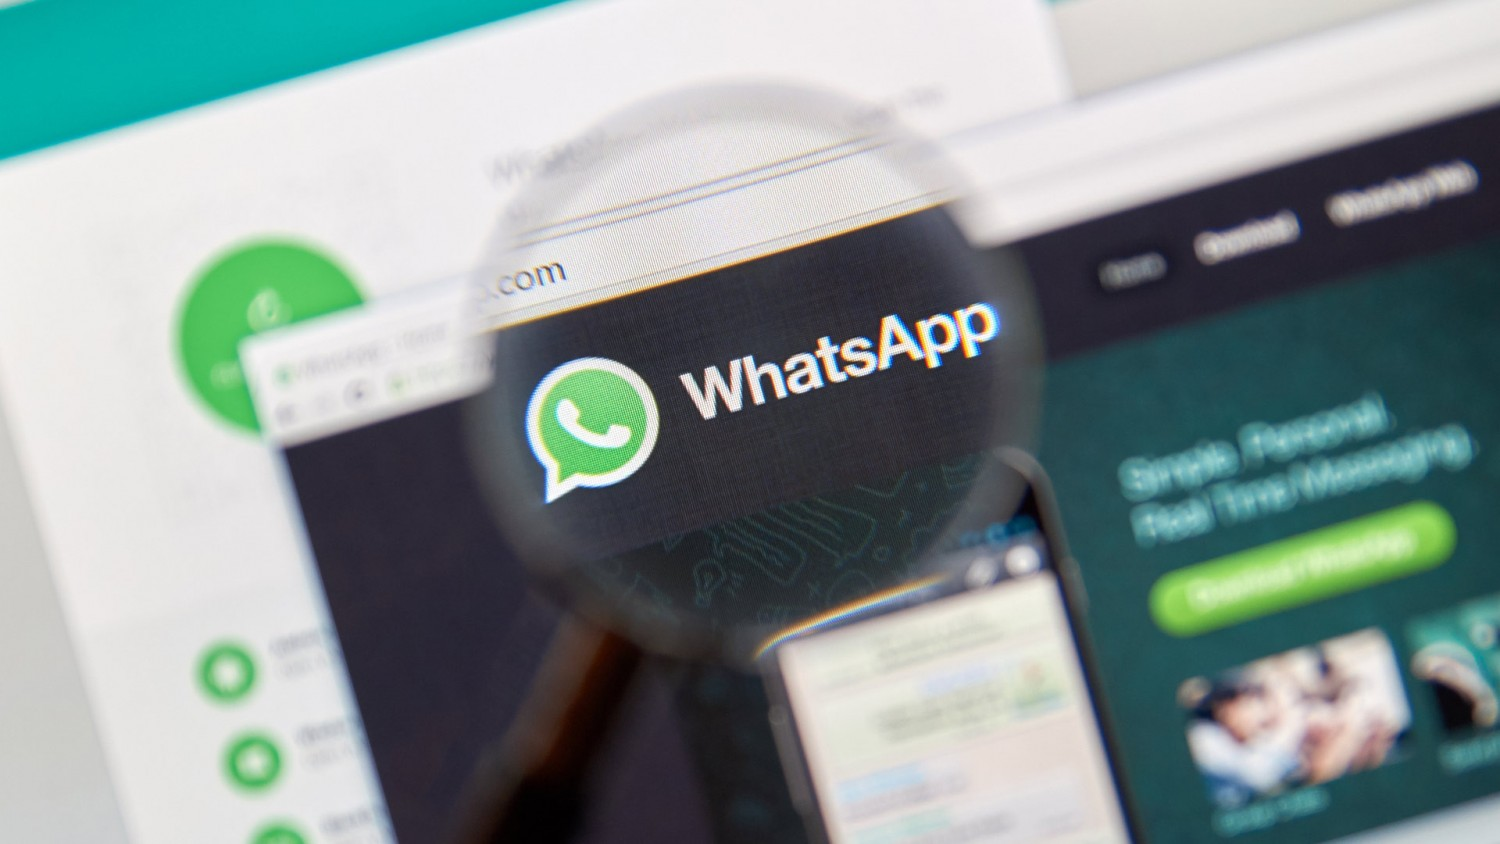 WSJ: Facebook has delayed the introduction of ads on WhatsApp